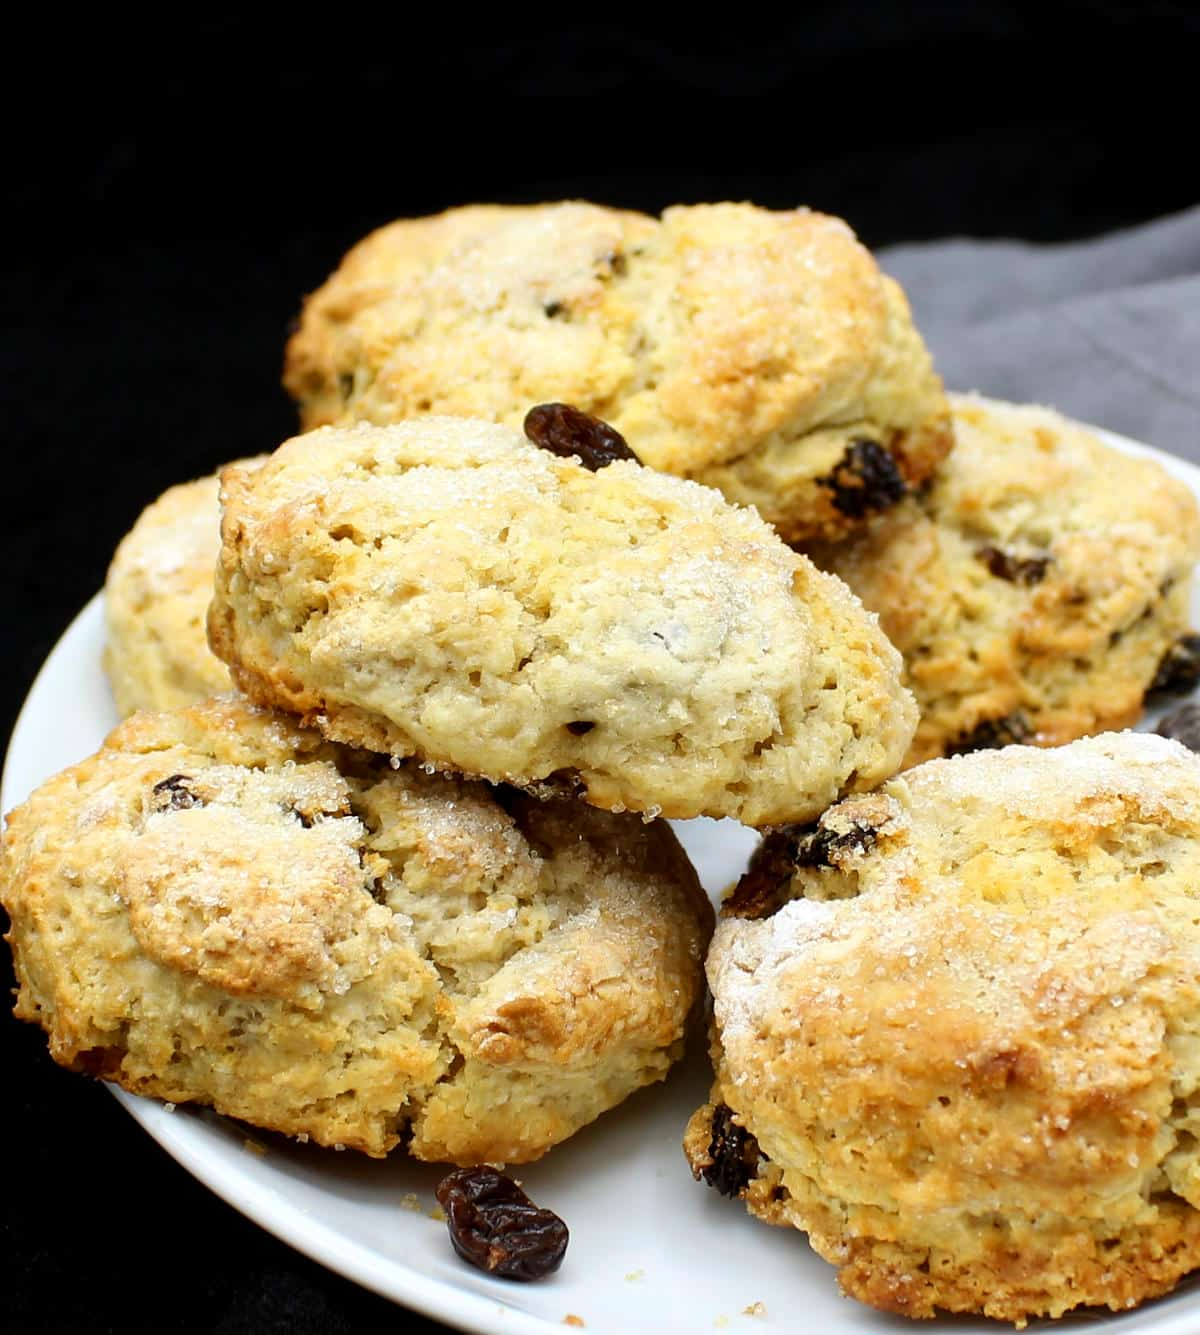 A stack of the best, fluffy, flaky and delicious golden vegan scones in a white plate.